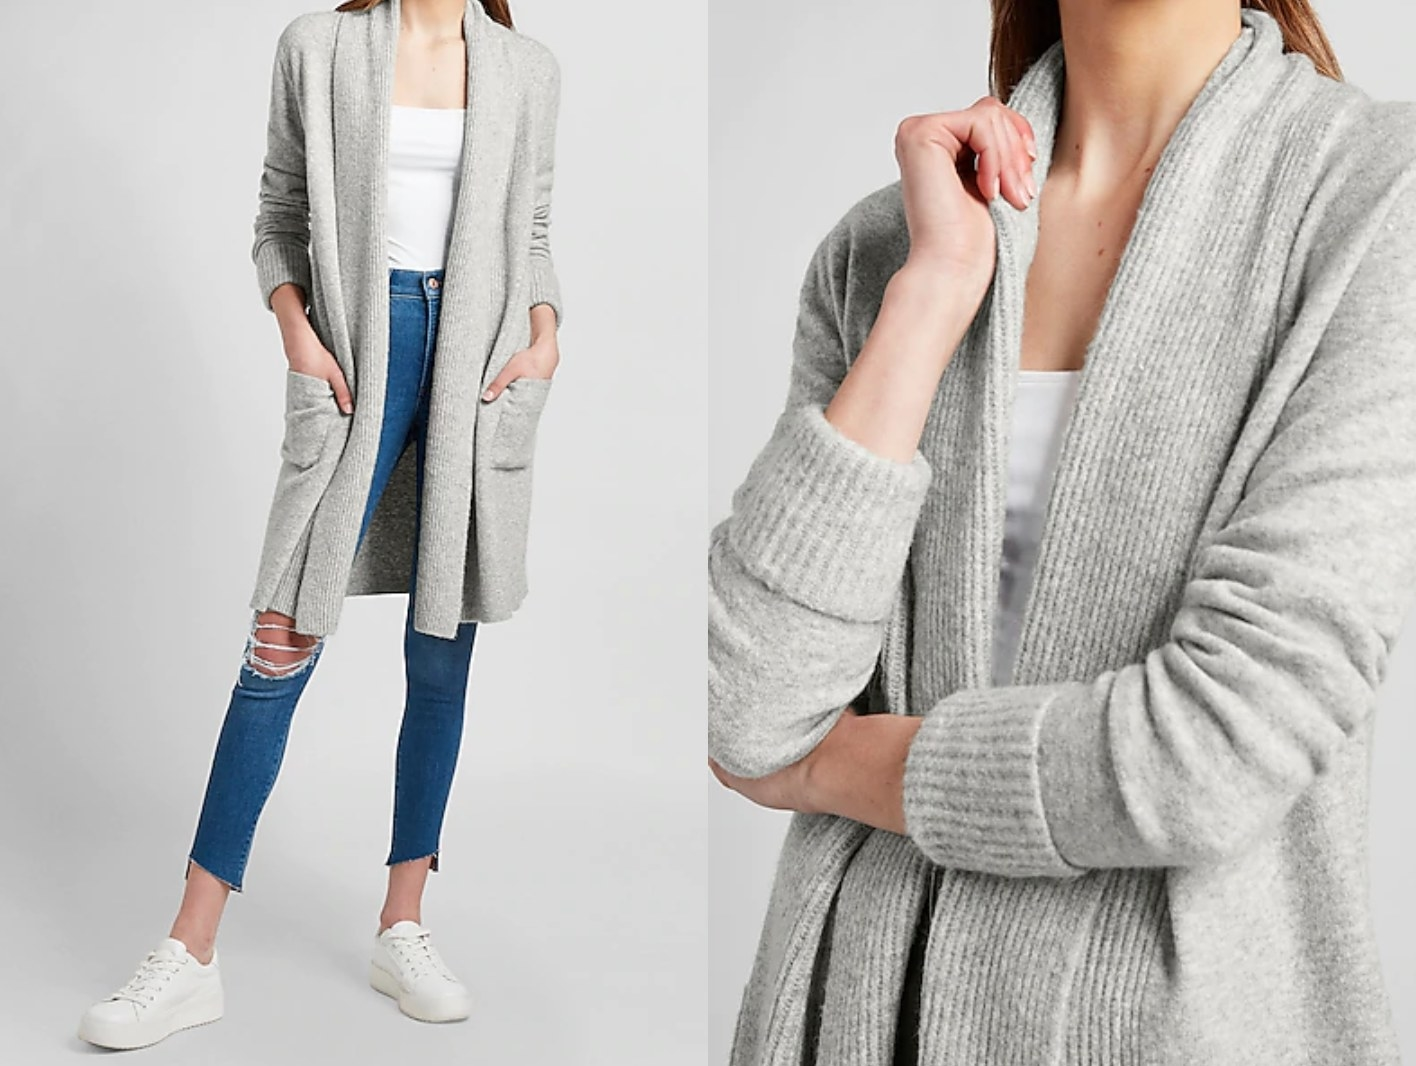 model wearing the ribbed shawl cardigan in gray with their hands int he pockets, then a close-up on the ribbed detail